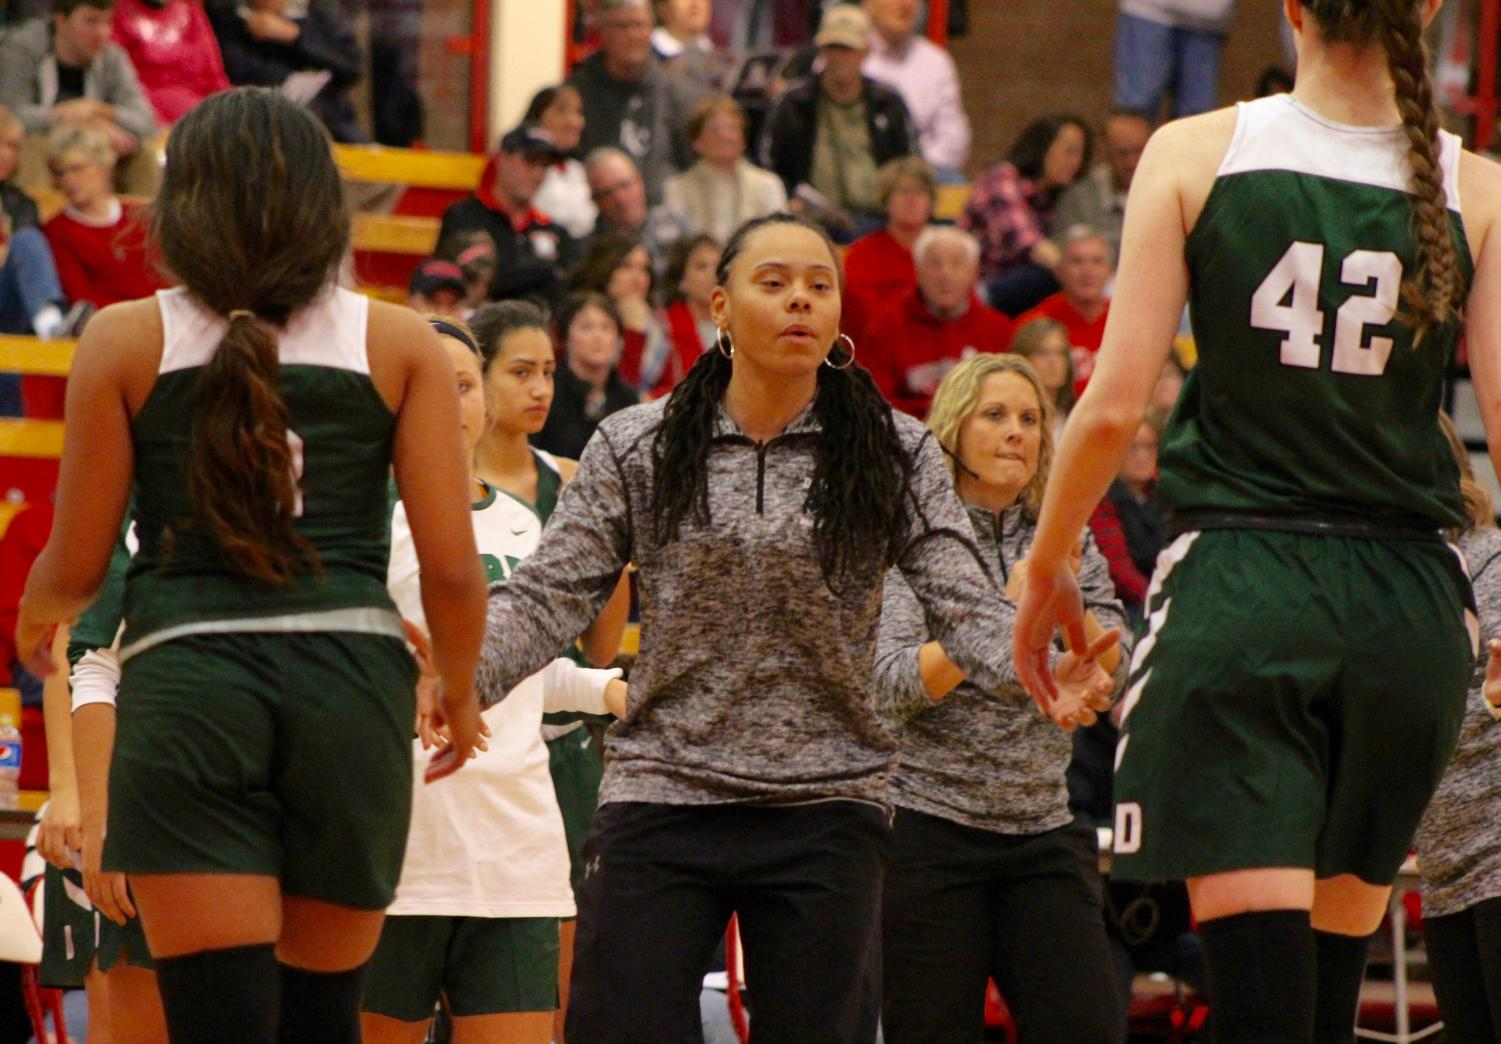 Coach+Jessica+Diamond+sticks+her+arms+out+for+high+fives+as+juniors+Aliyah+Meyers+and+Kennedy+Brown++come+in+for+a+timeout.